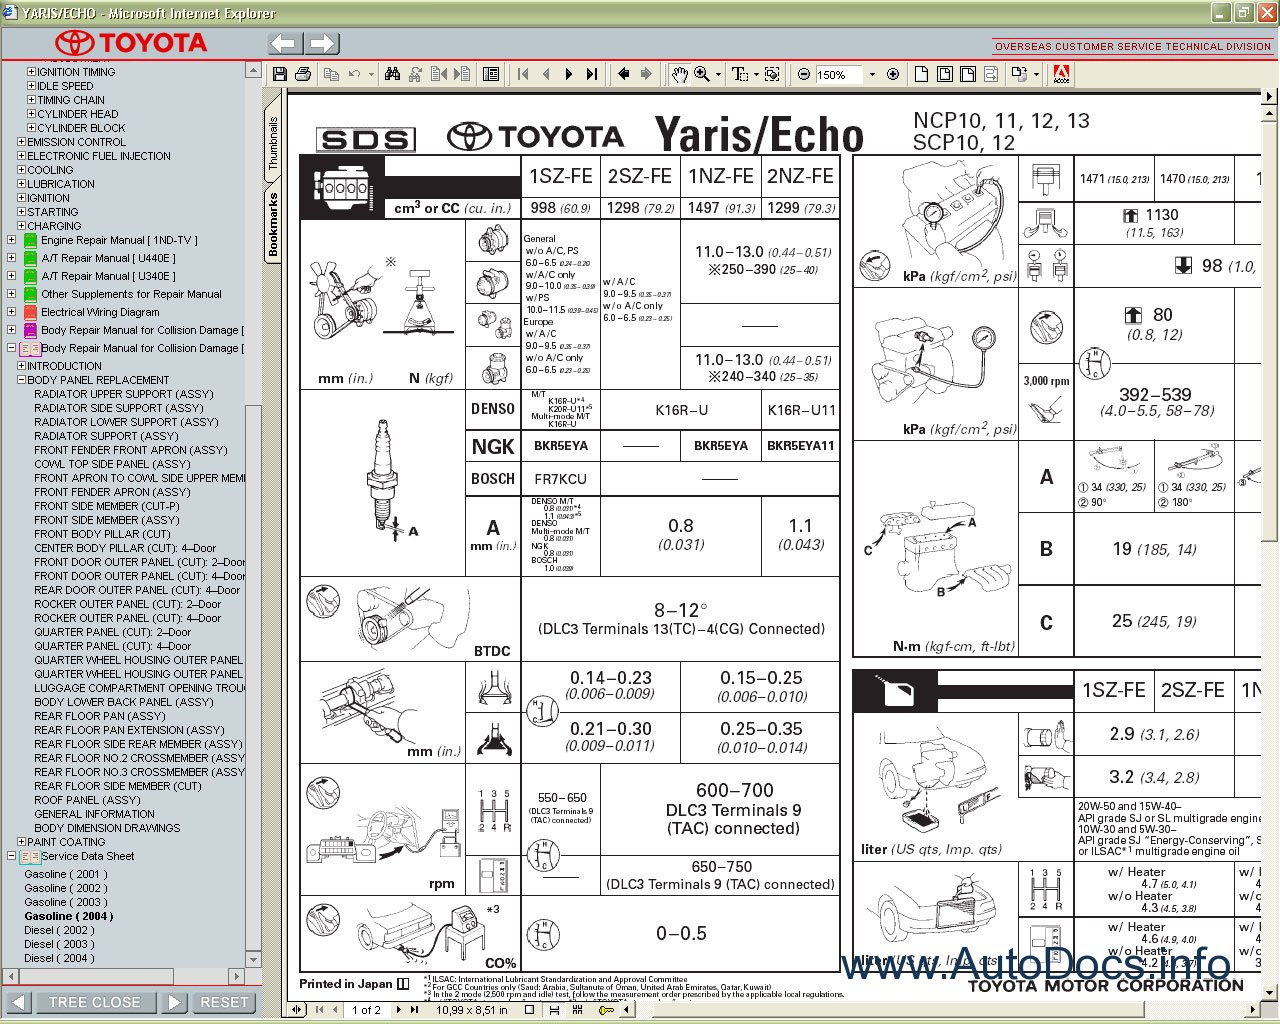 Toyota Yaris Wiring Diagram Pdf Best Secret Belta Workshop Repair Manual Download 1999 2005 2015 2009